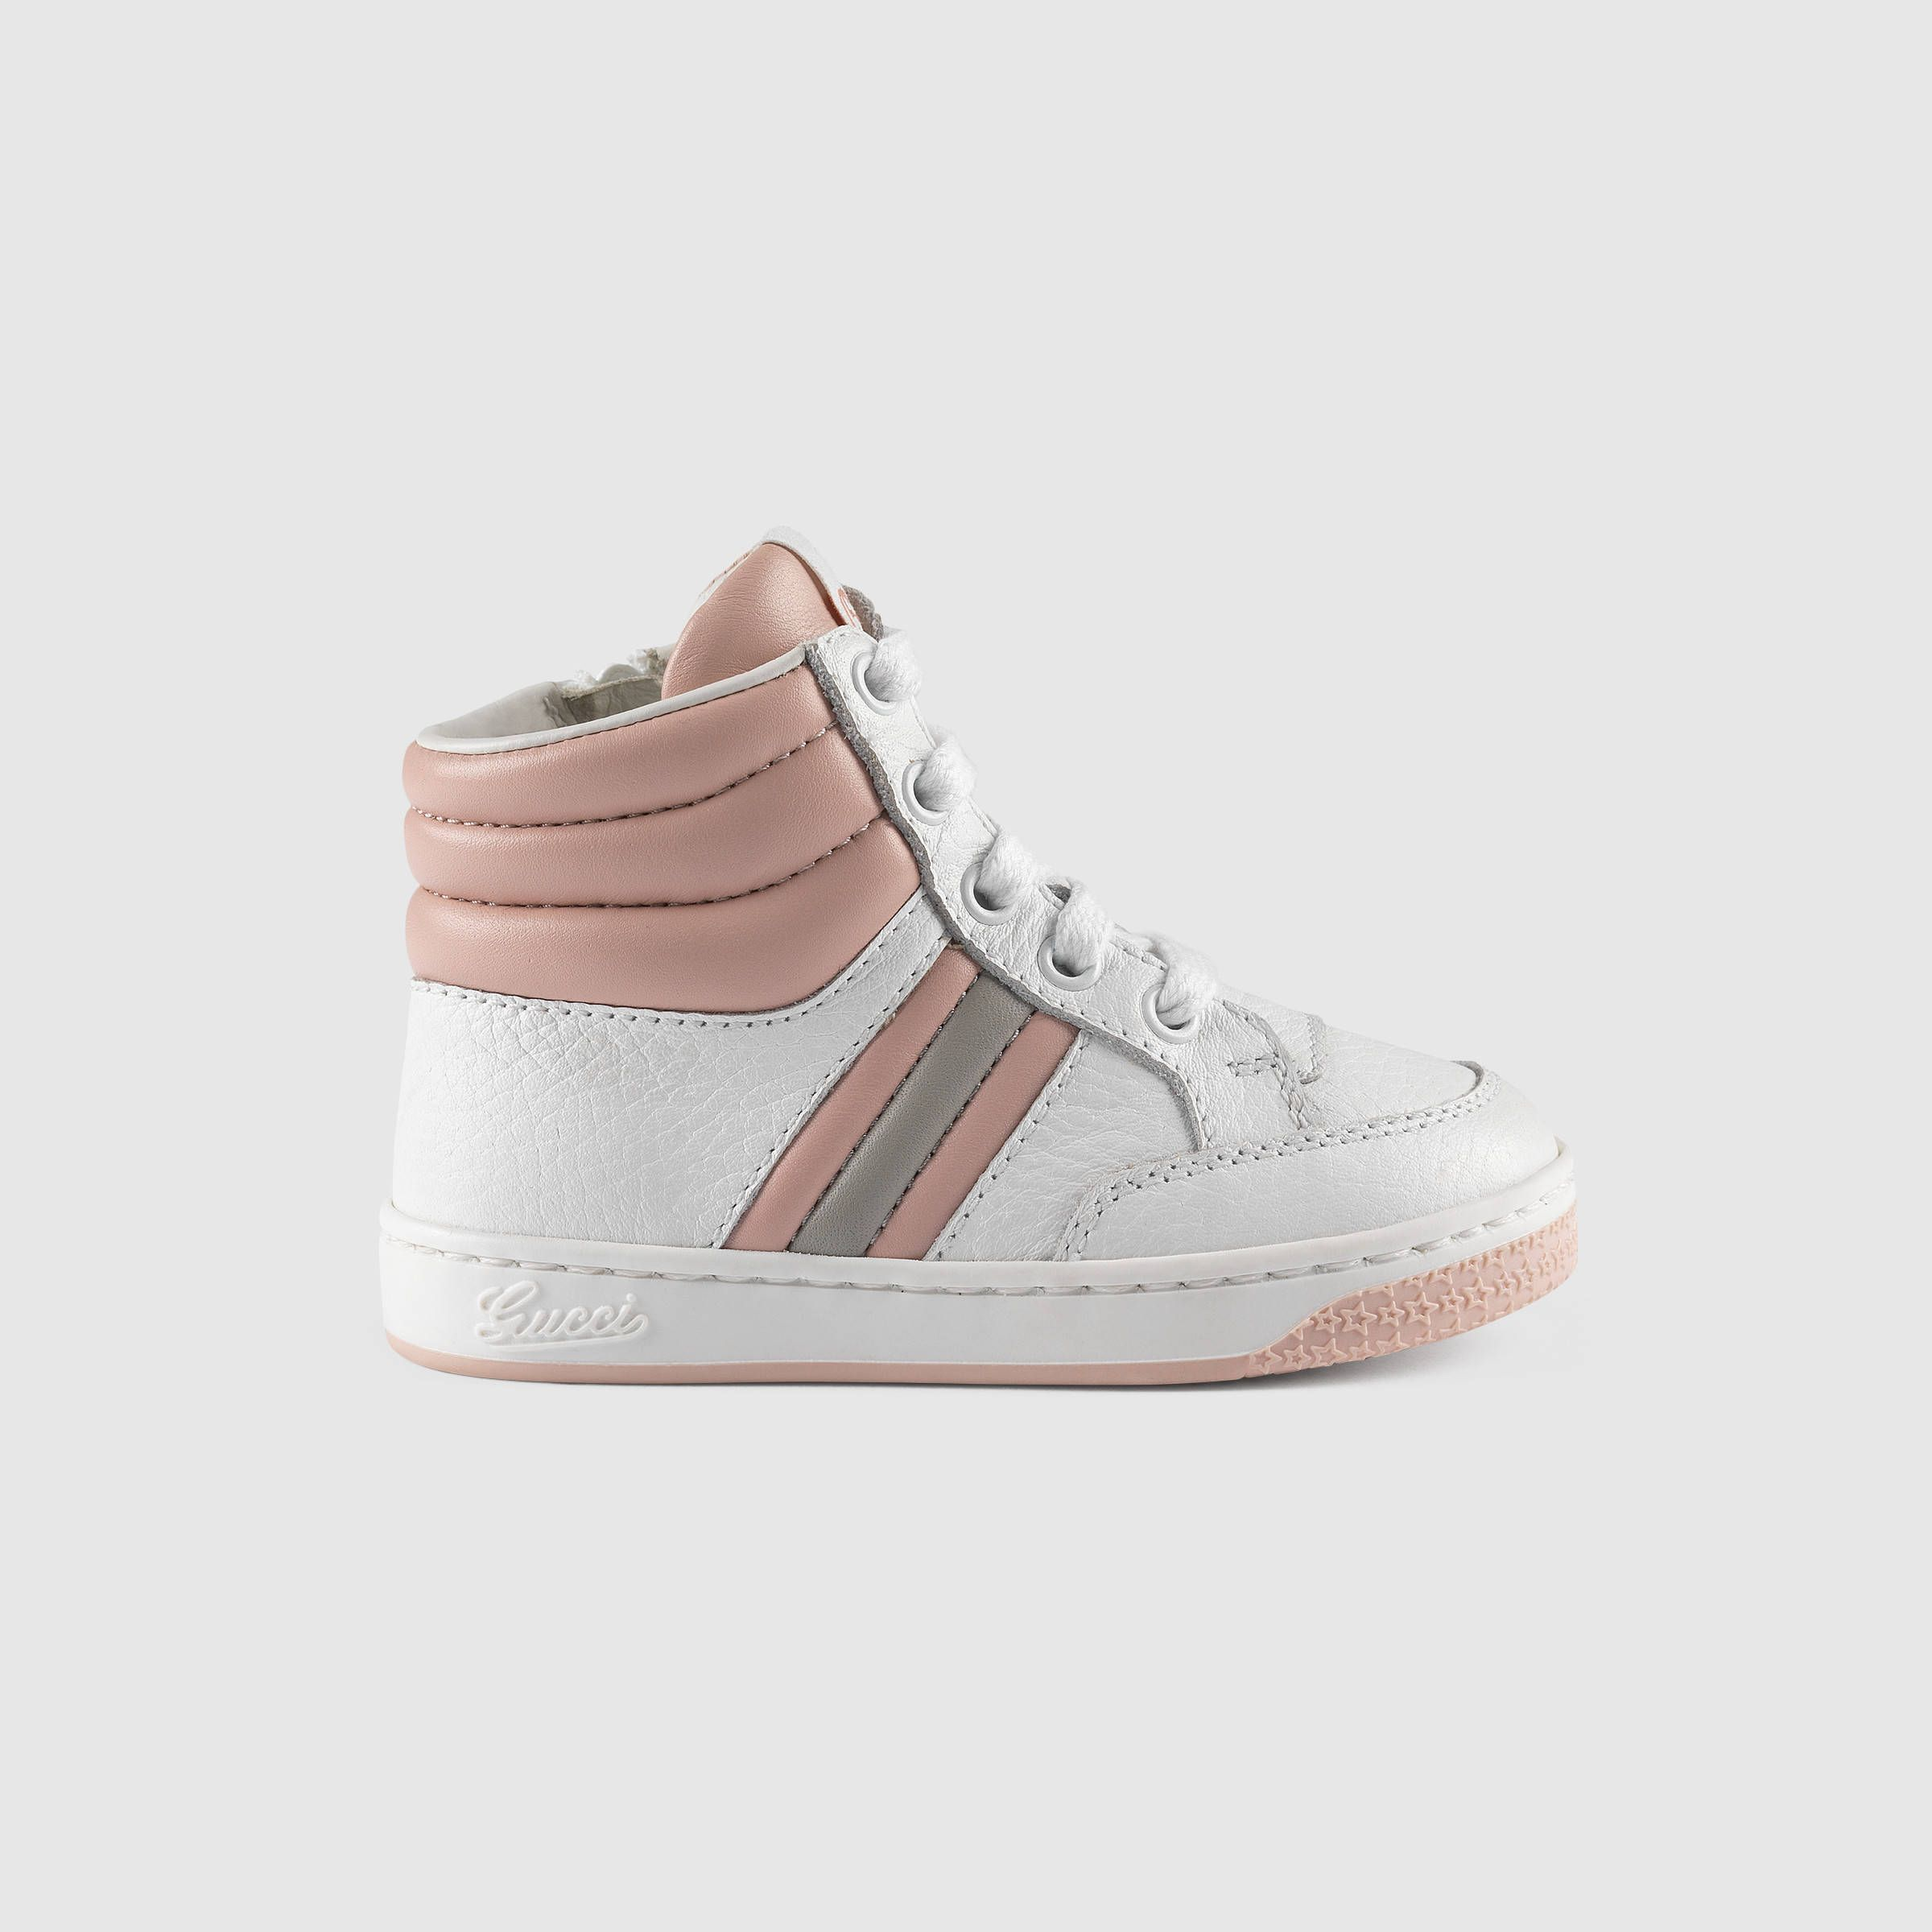 Gucci toddler shoes